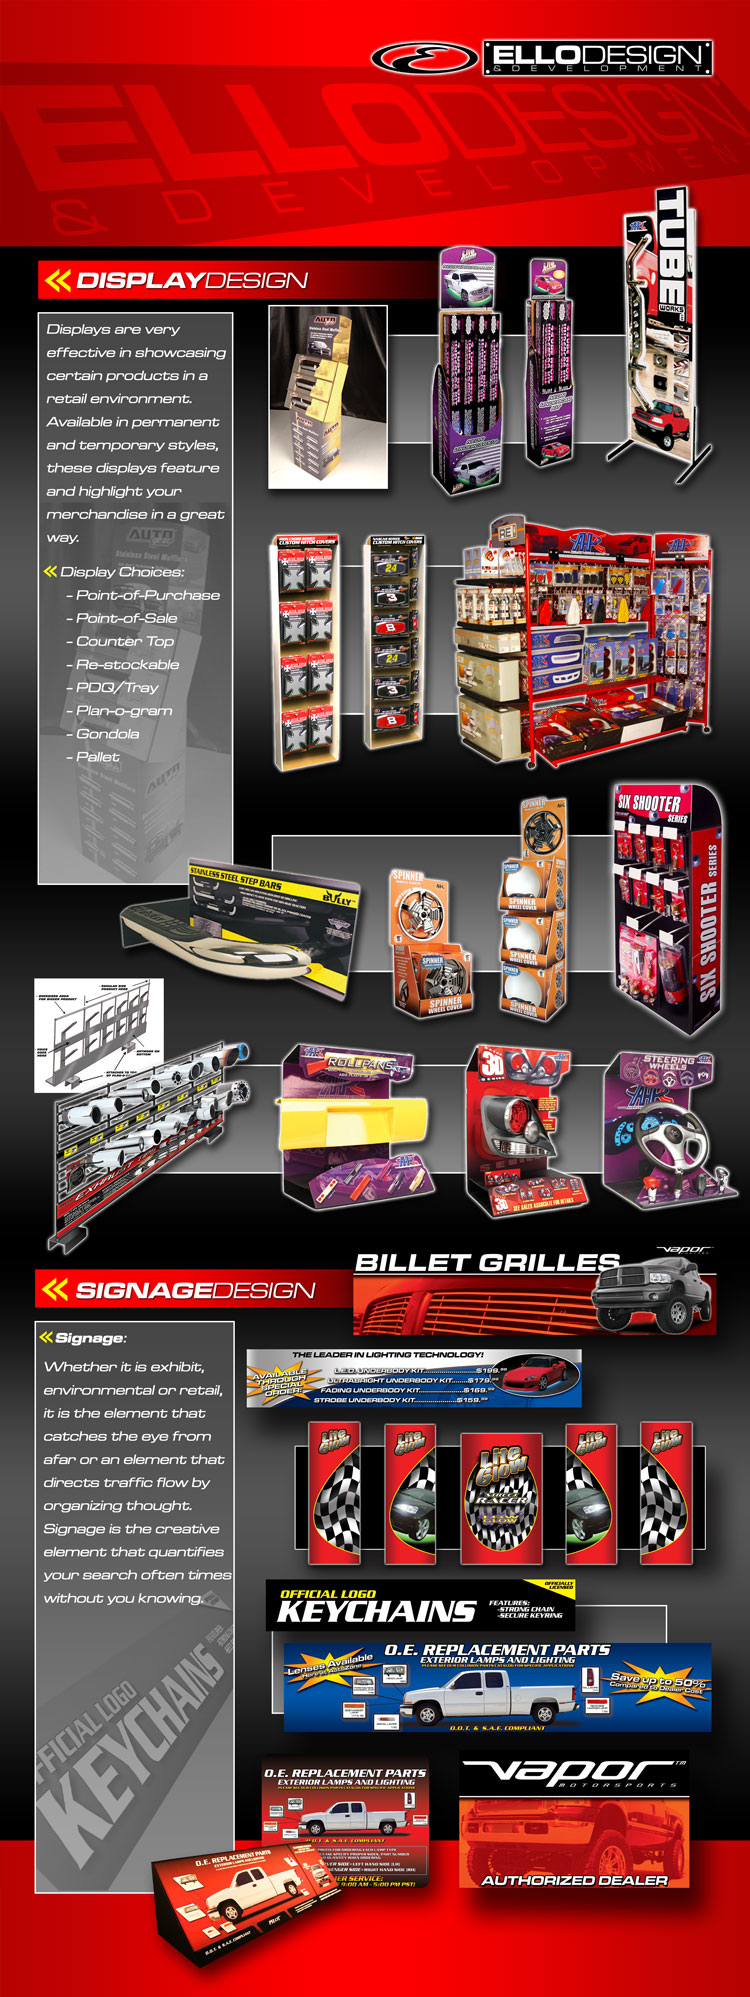 ELLODESIGN-PAGE-4-POP-DISPLAY-SIGNAGE